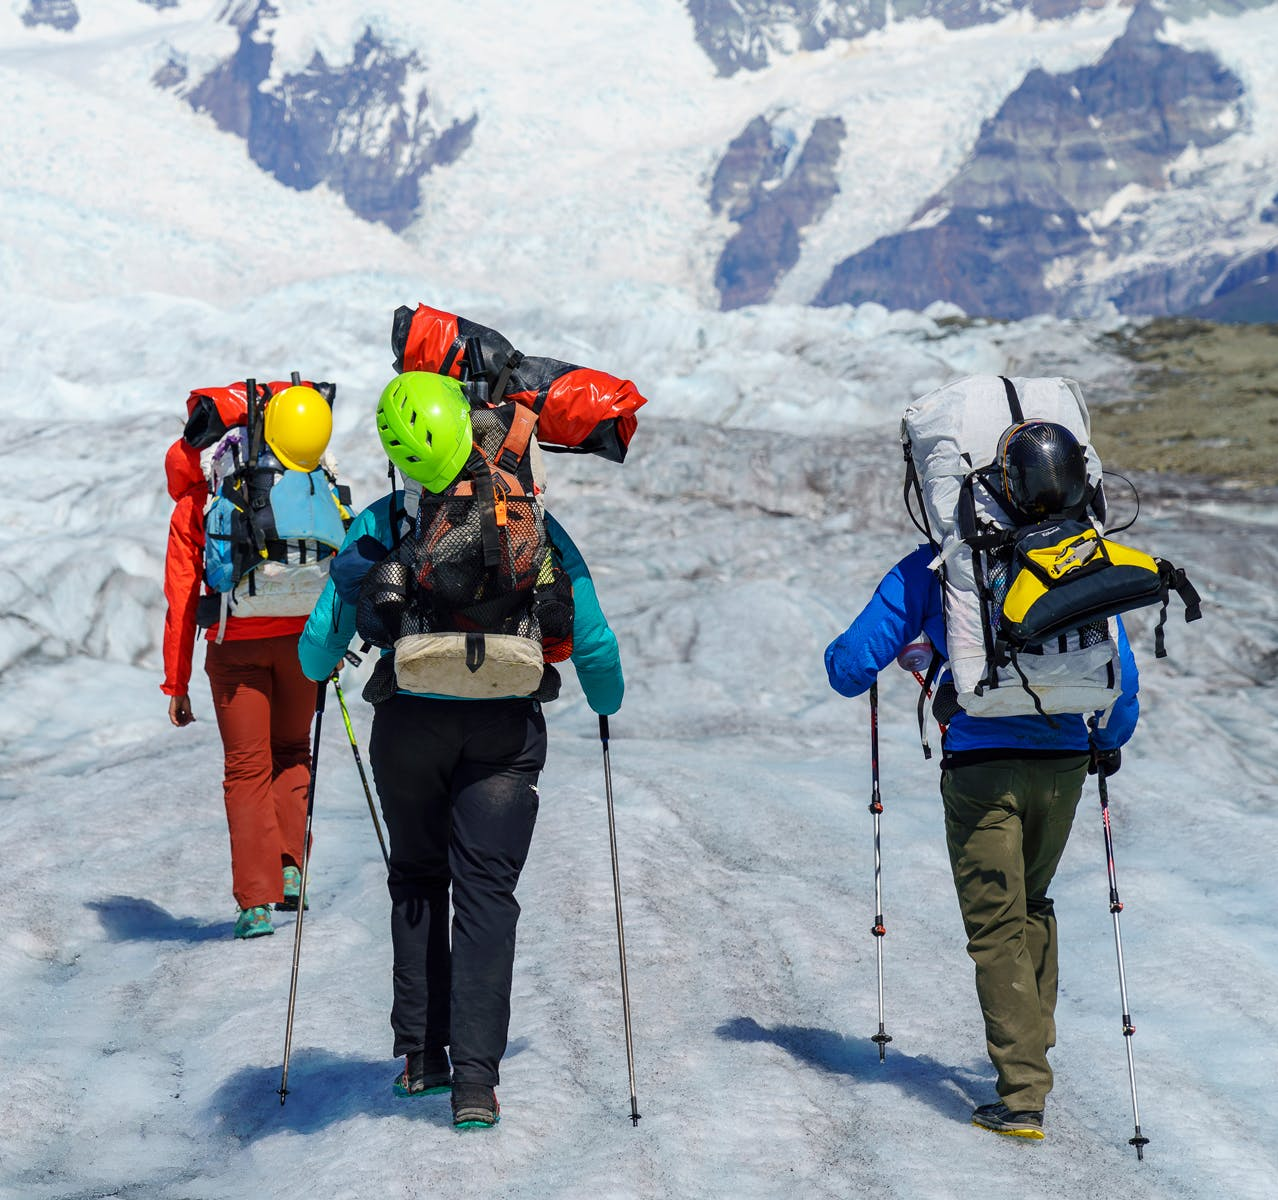 People hiking with packrafts over snowcovered landscape